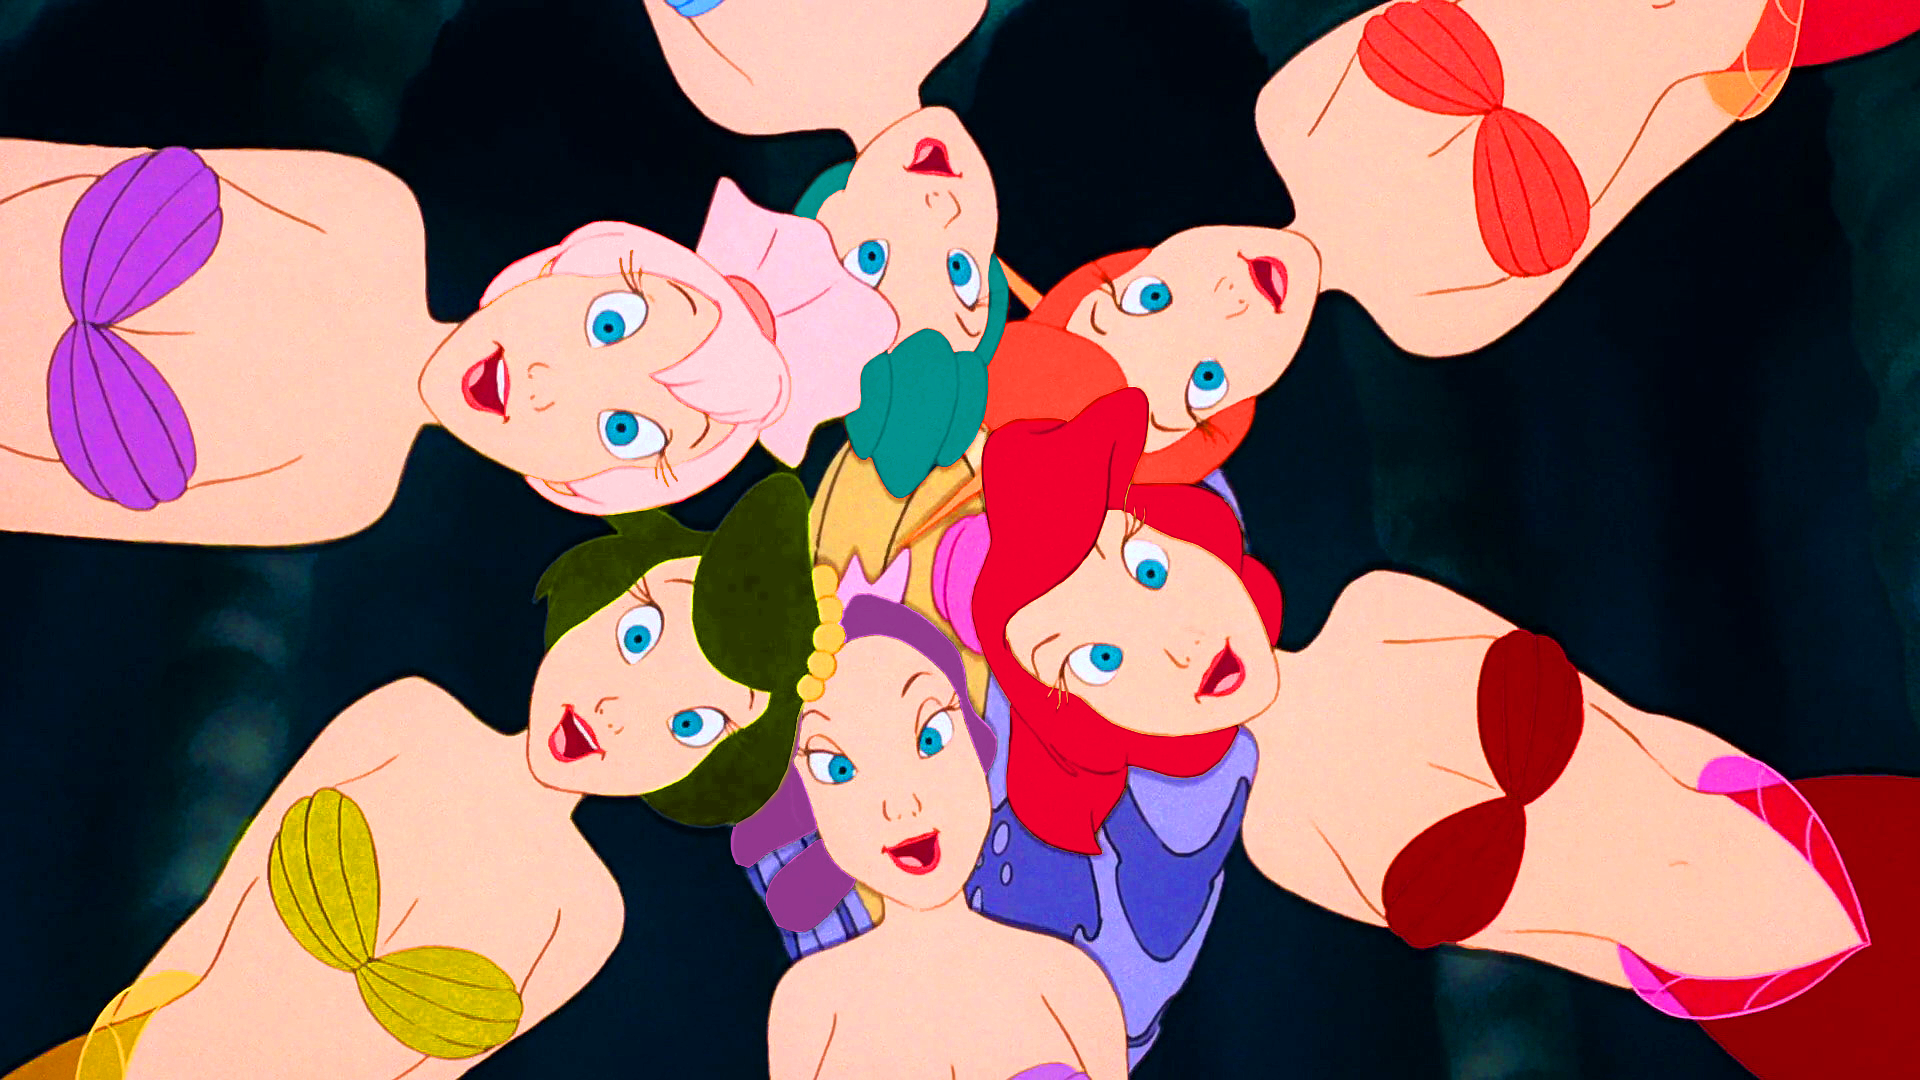 Ariel's Sisters - Musical-inspired